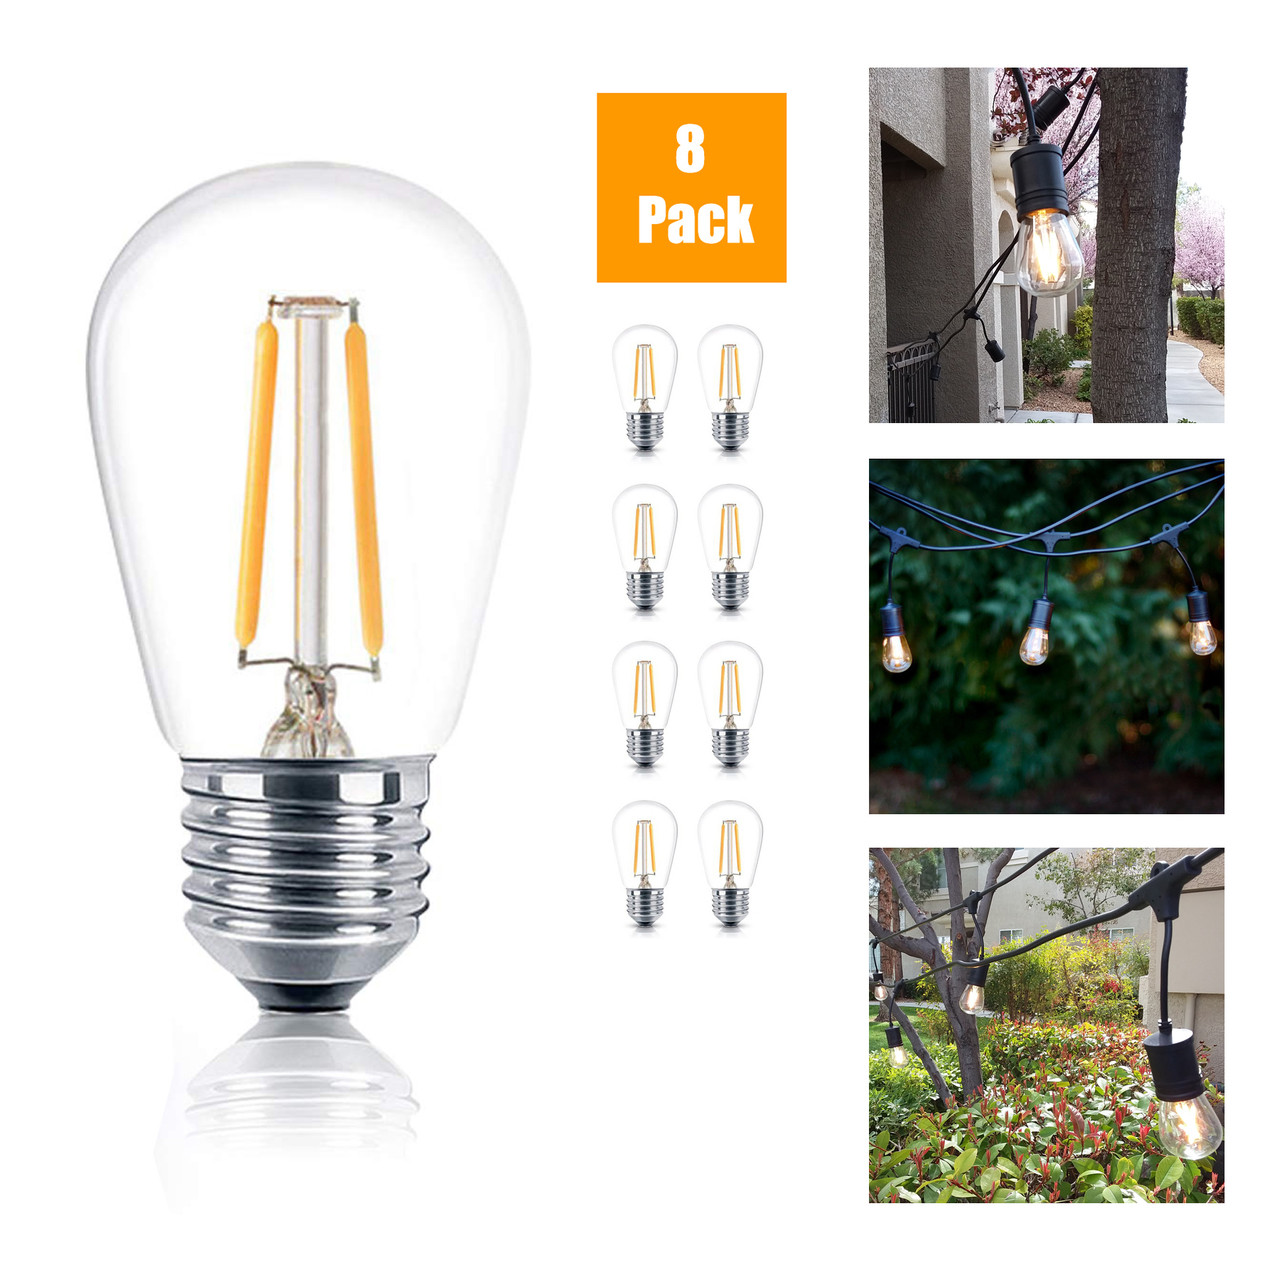 Reo Lite Weatherproof Led S14 100 Lumens 1 Watt 11w Incandescent Equal 2400 Kelvin Residential Warm 8 Pack